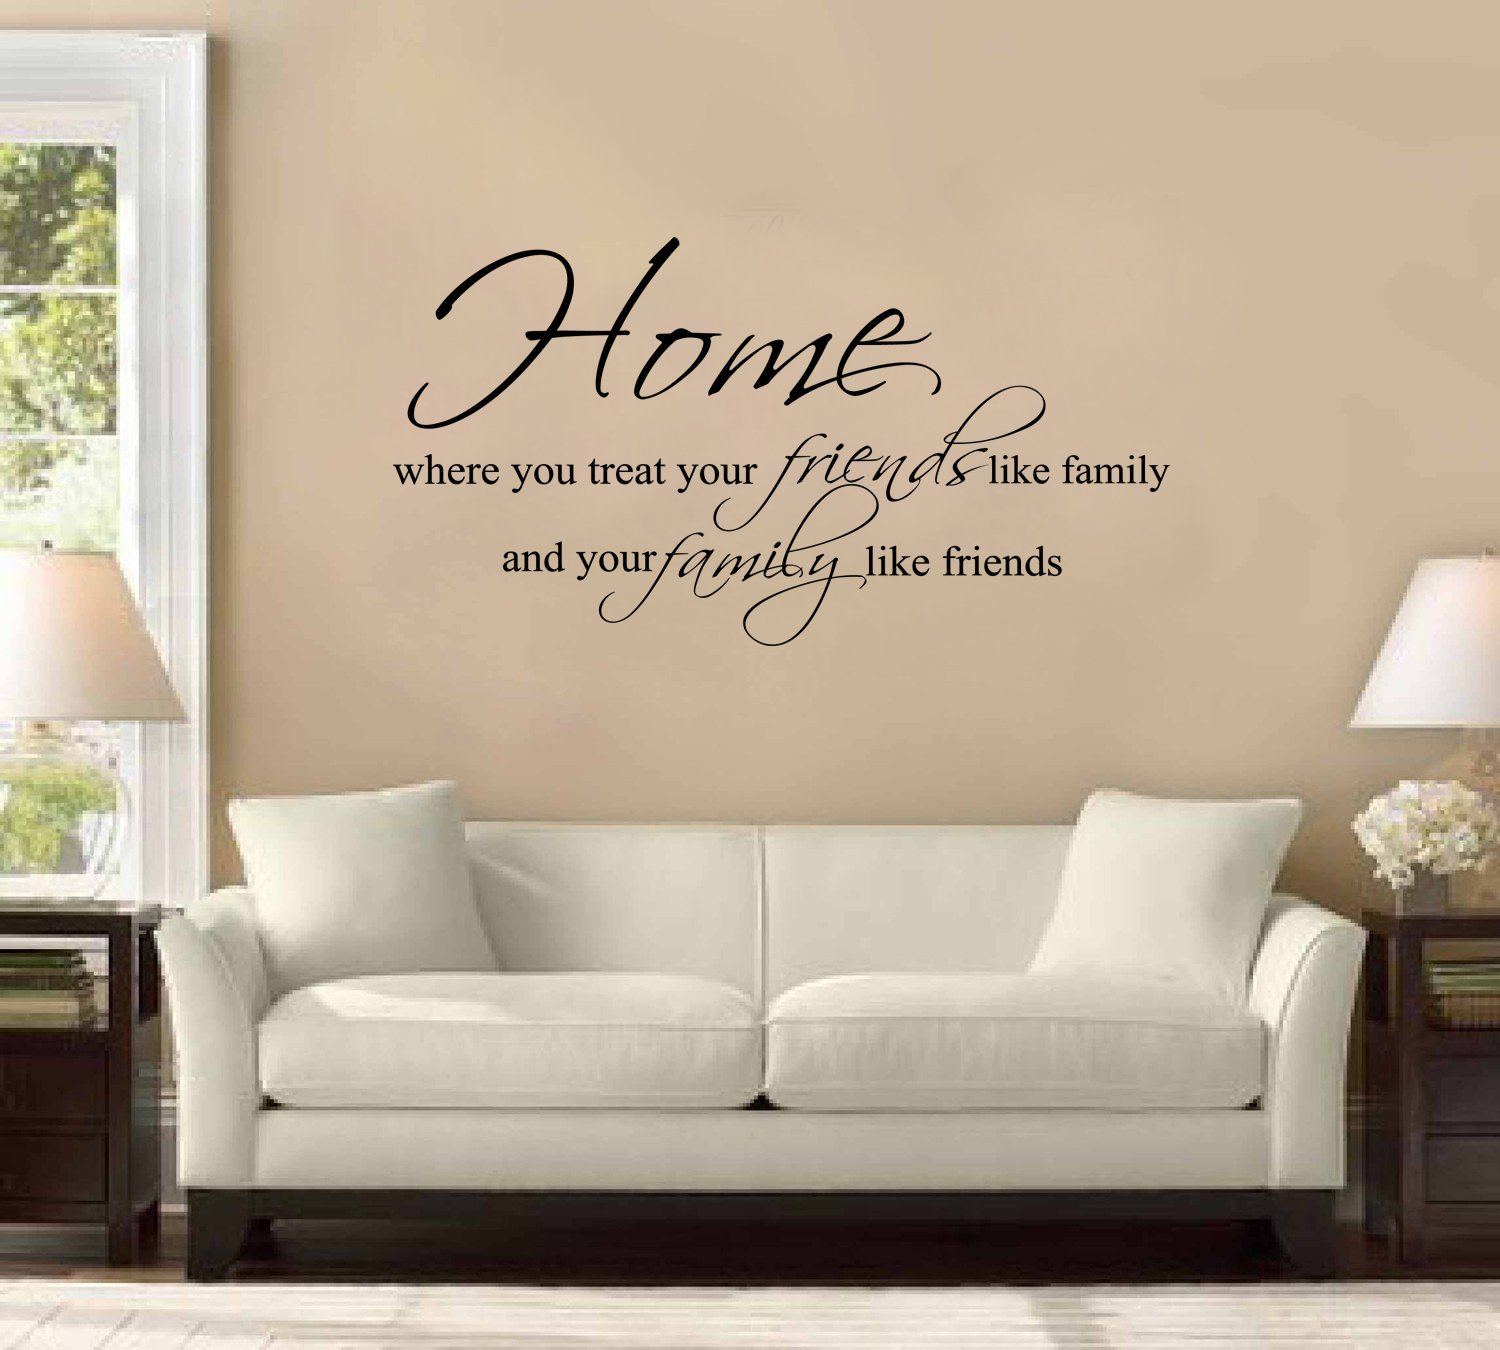 42 home is where you treat friends like family and family like 42 home is where you treat friends like family and family like friends large wall decal sticker quote home decoration decor other products amazon amipublicfo Choice Image